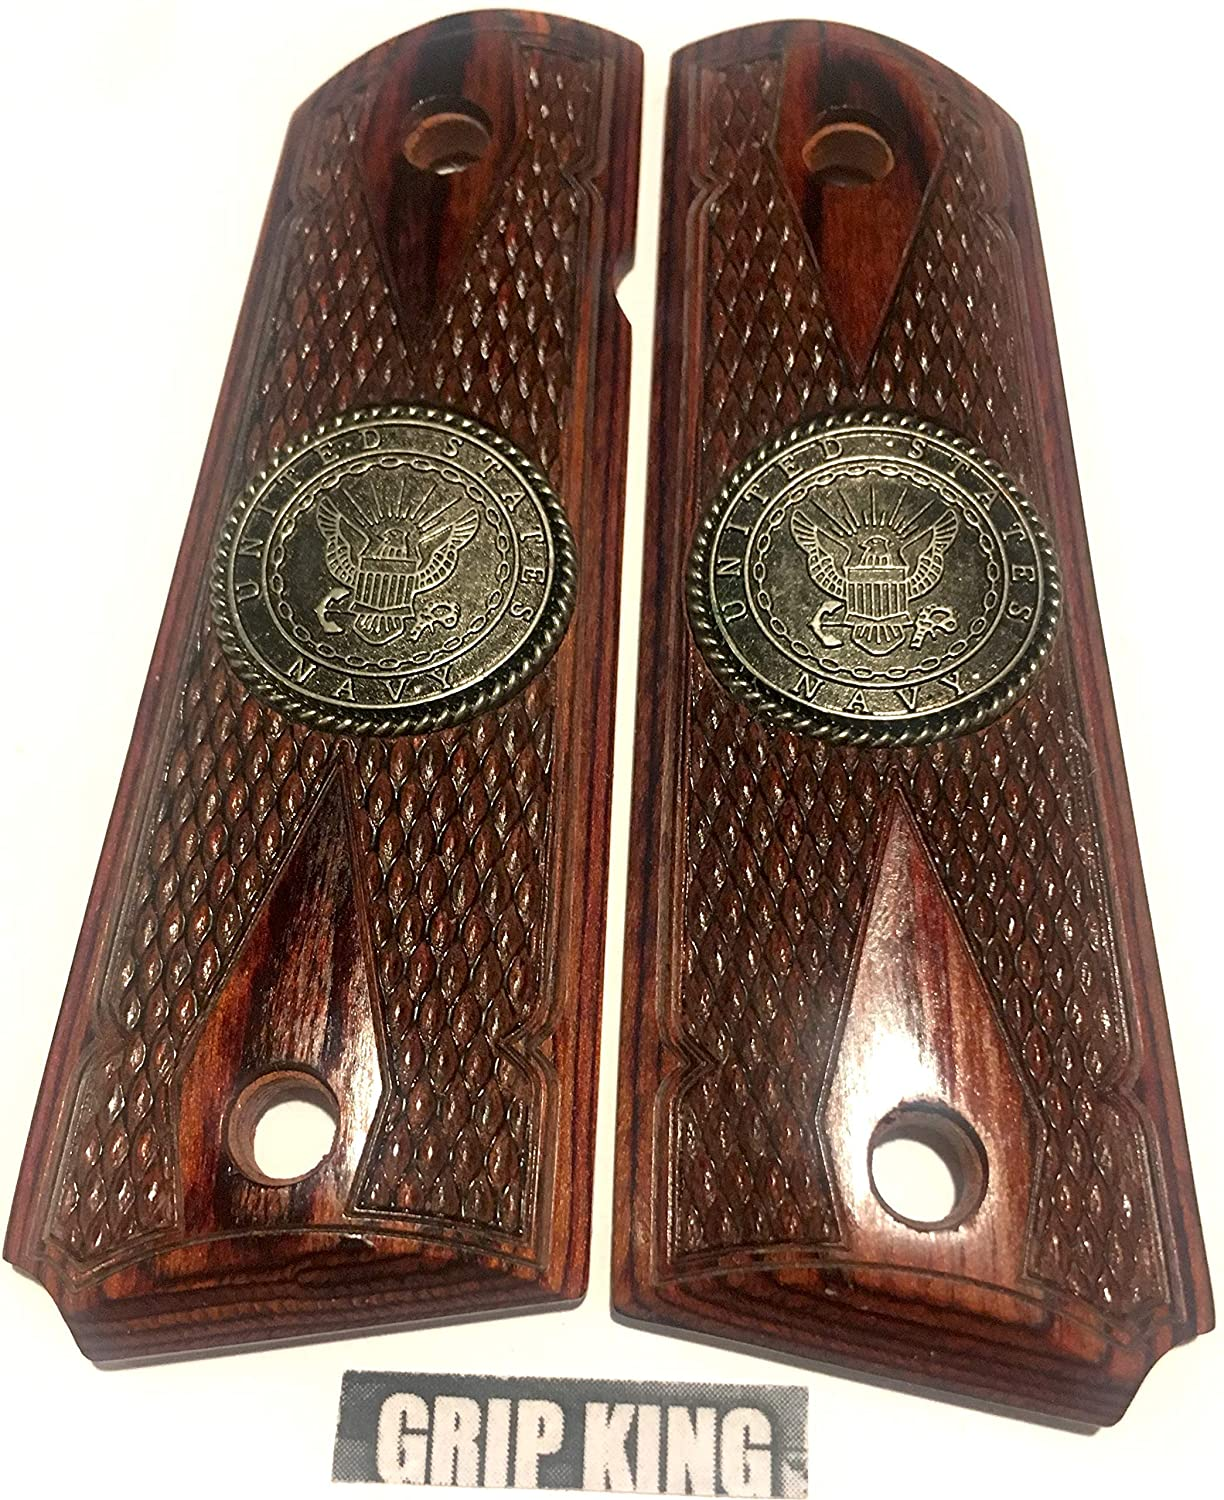 1911 GRIPS,U.S.NAVY,BURLED ROSEWOOD.FITS COLT,SIG,RUGER,TAURUS,SPRINGFIELD,PARA,REMINGTON,WILSON,ACE,ITHACA S & W, CLONES. SALE $39.88